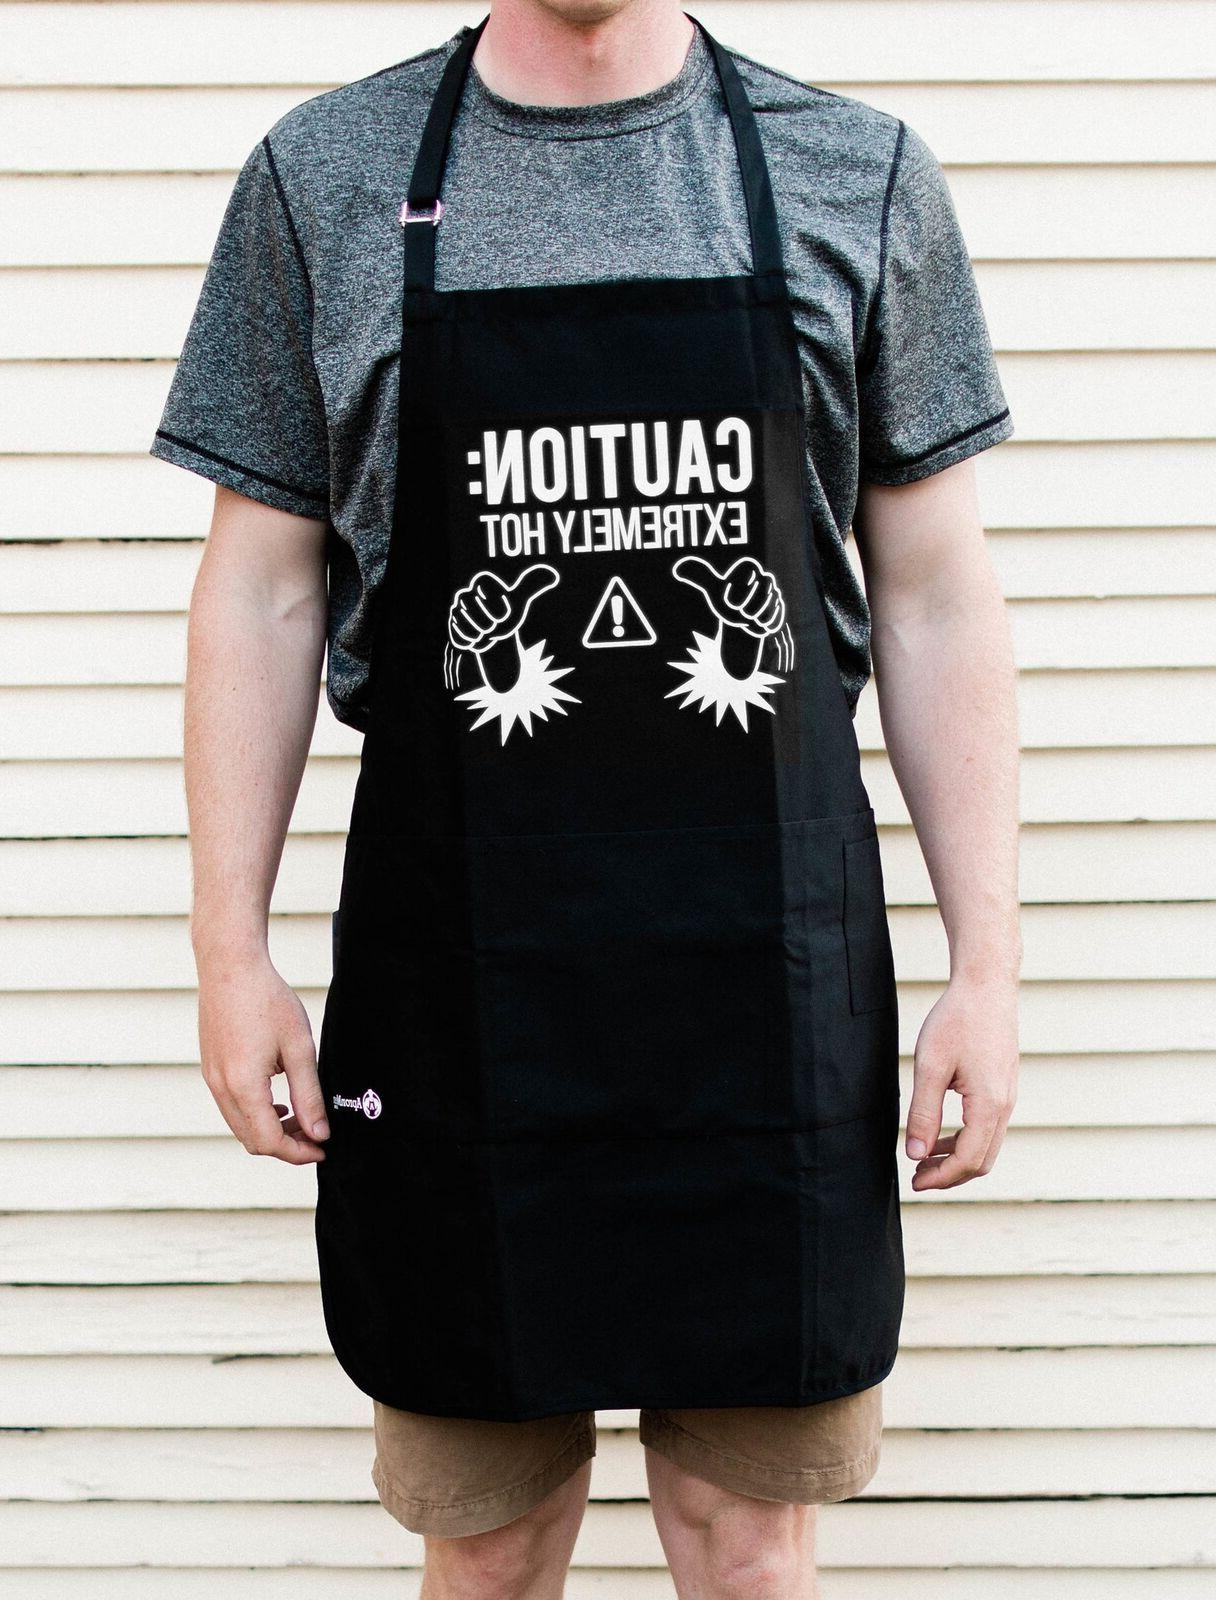 Caution: Hot Grill BBQ Funny Apron Gift ApronMen